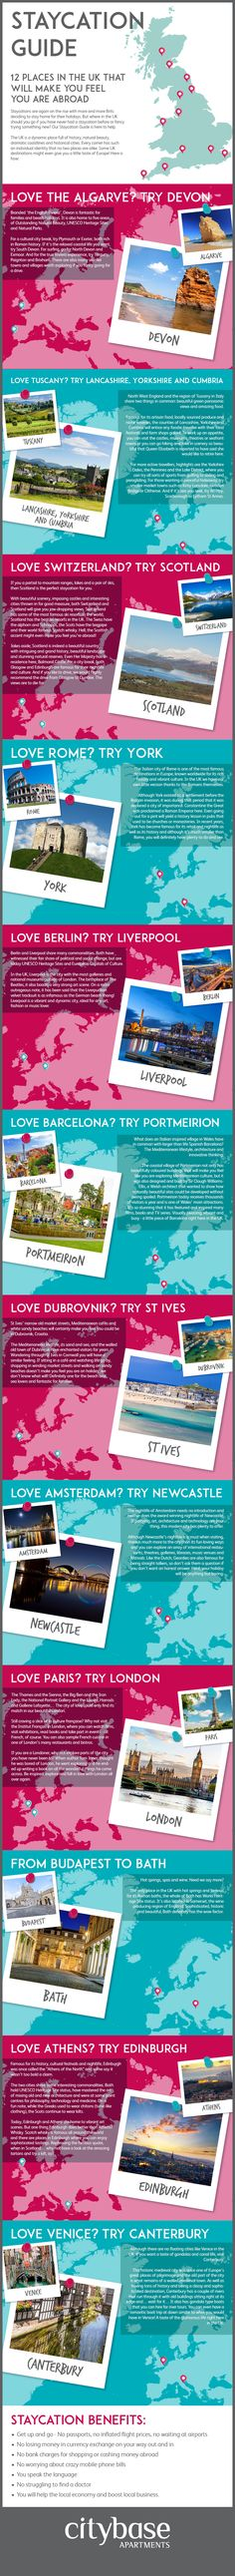 Staycation Guide: 12 Places in the UK that will Make You Feel You are Abroad #Infographic #Travel